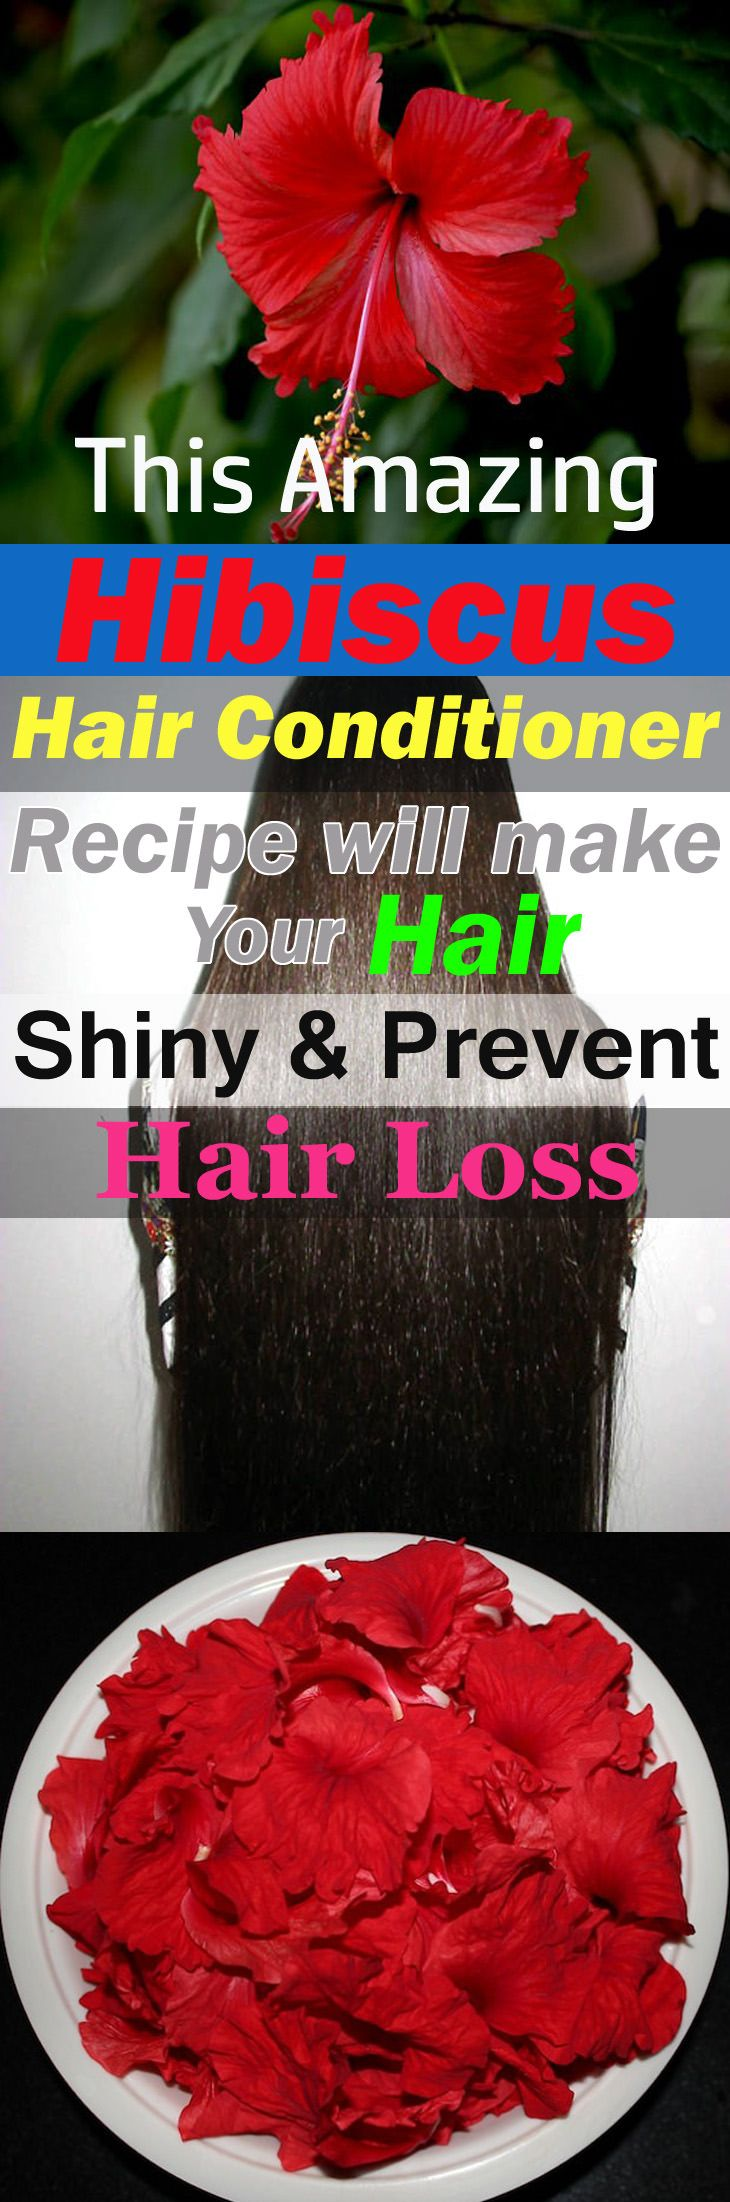 This Amazing Hibiscus Hair Conditioner Recipe Will Make Your Hair Shiny & Prevent Hair Loss